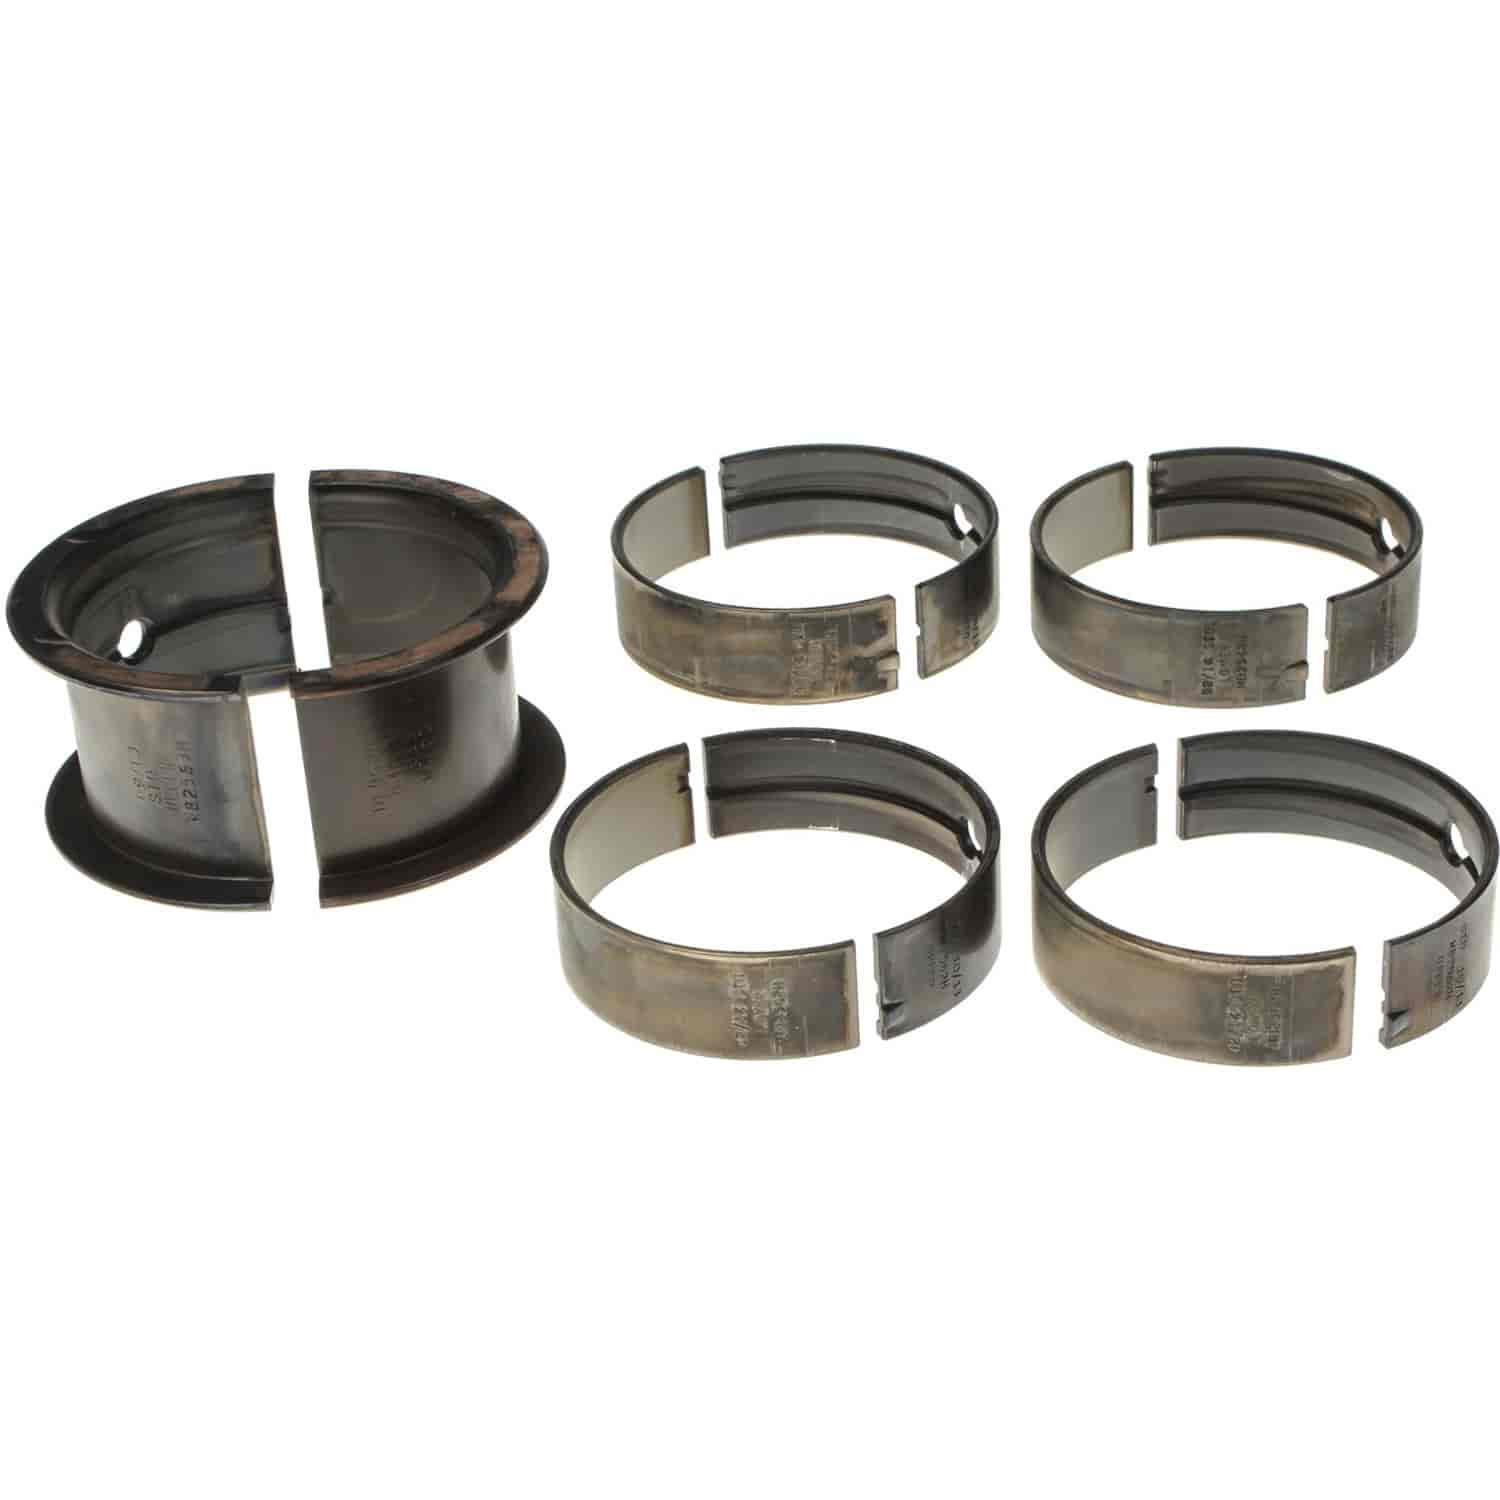 Clevite MS1038H - Clevite 77 High-Performance Bearings